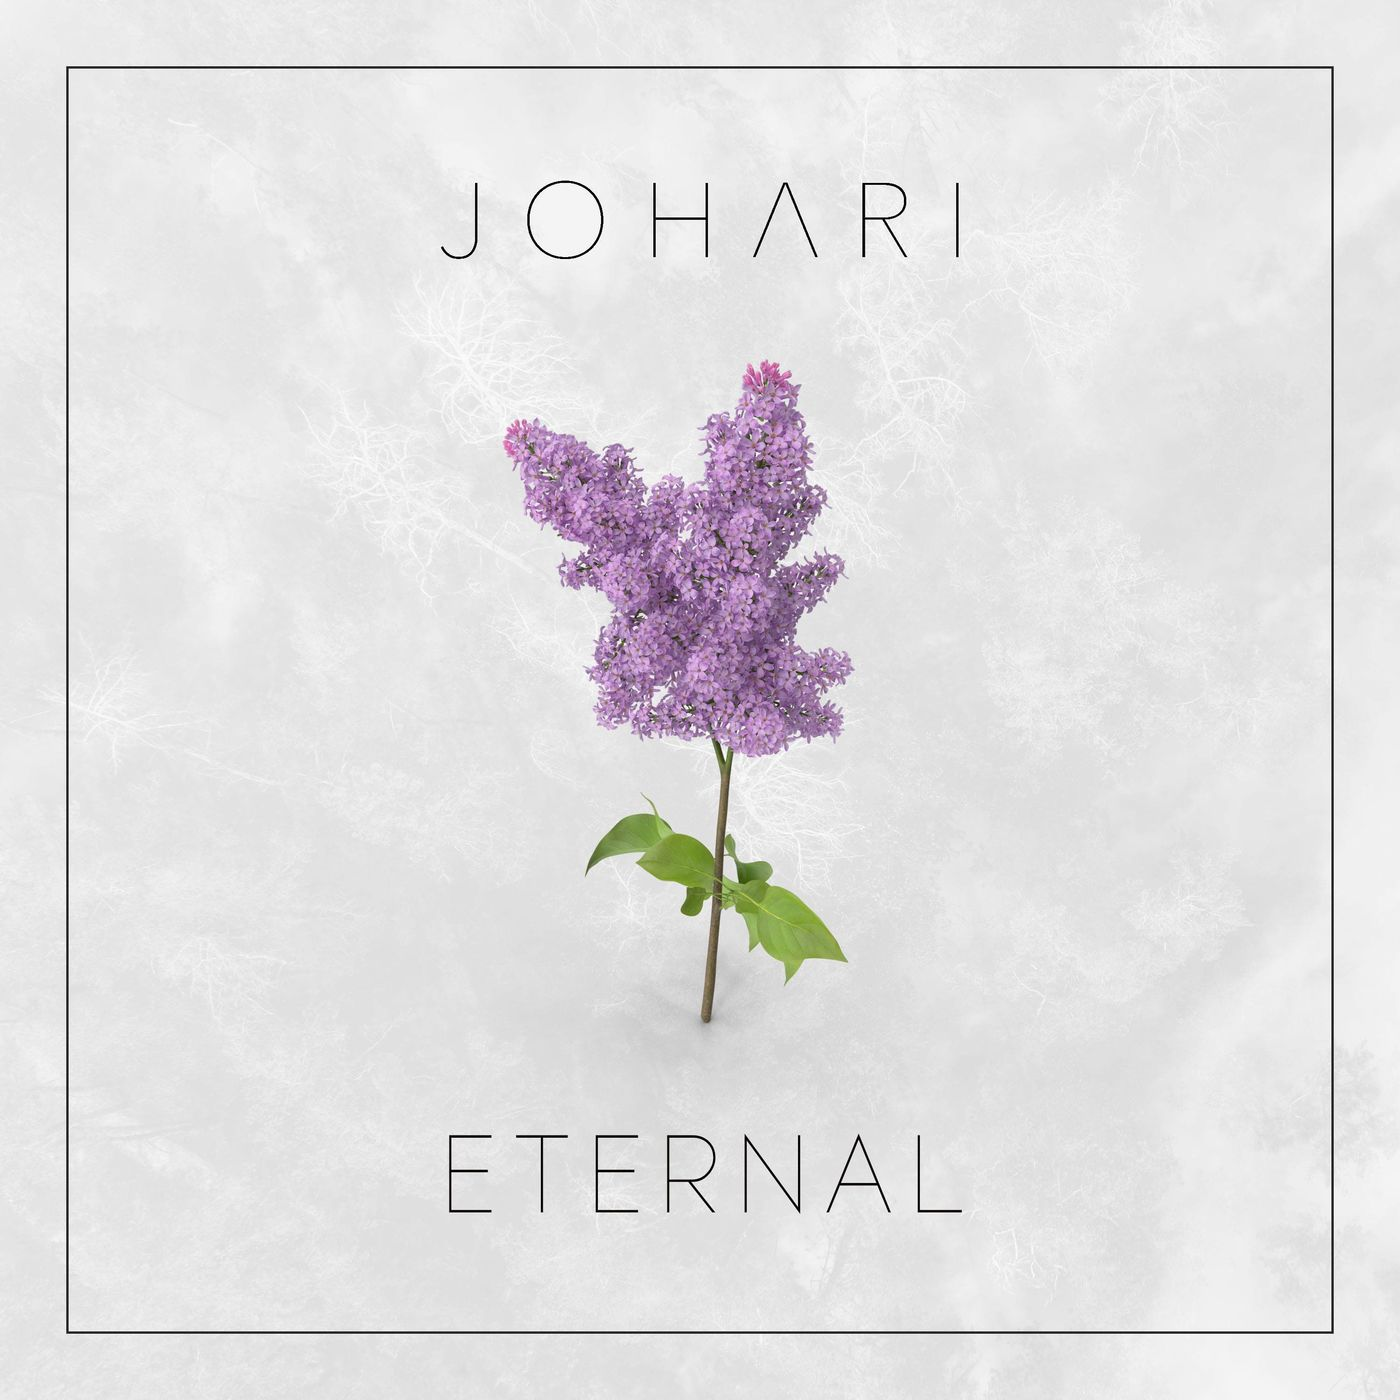 Johari - Eternal [single] (2020)